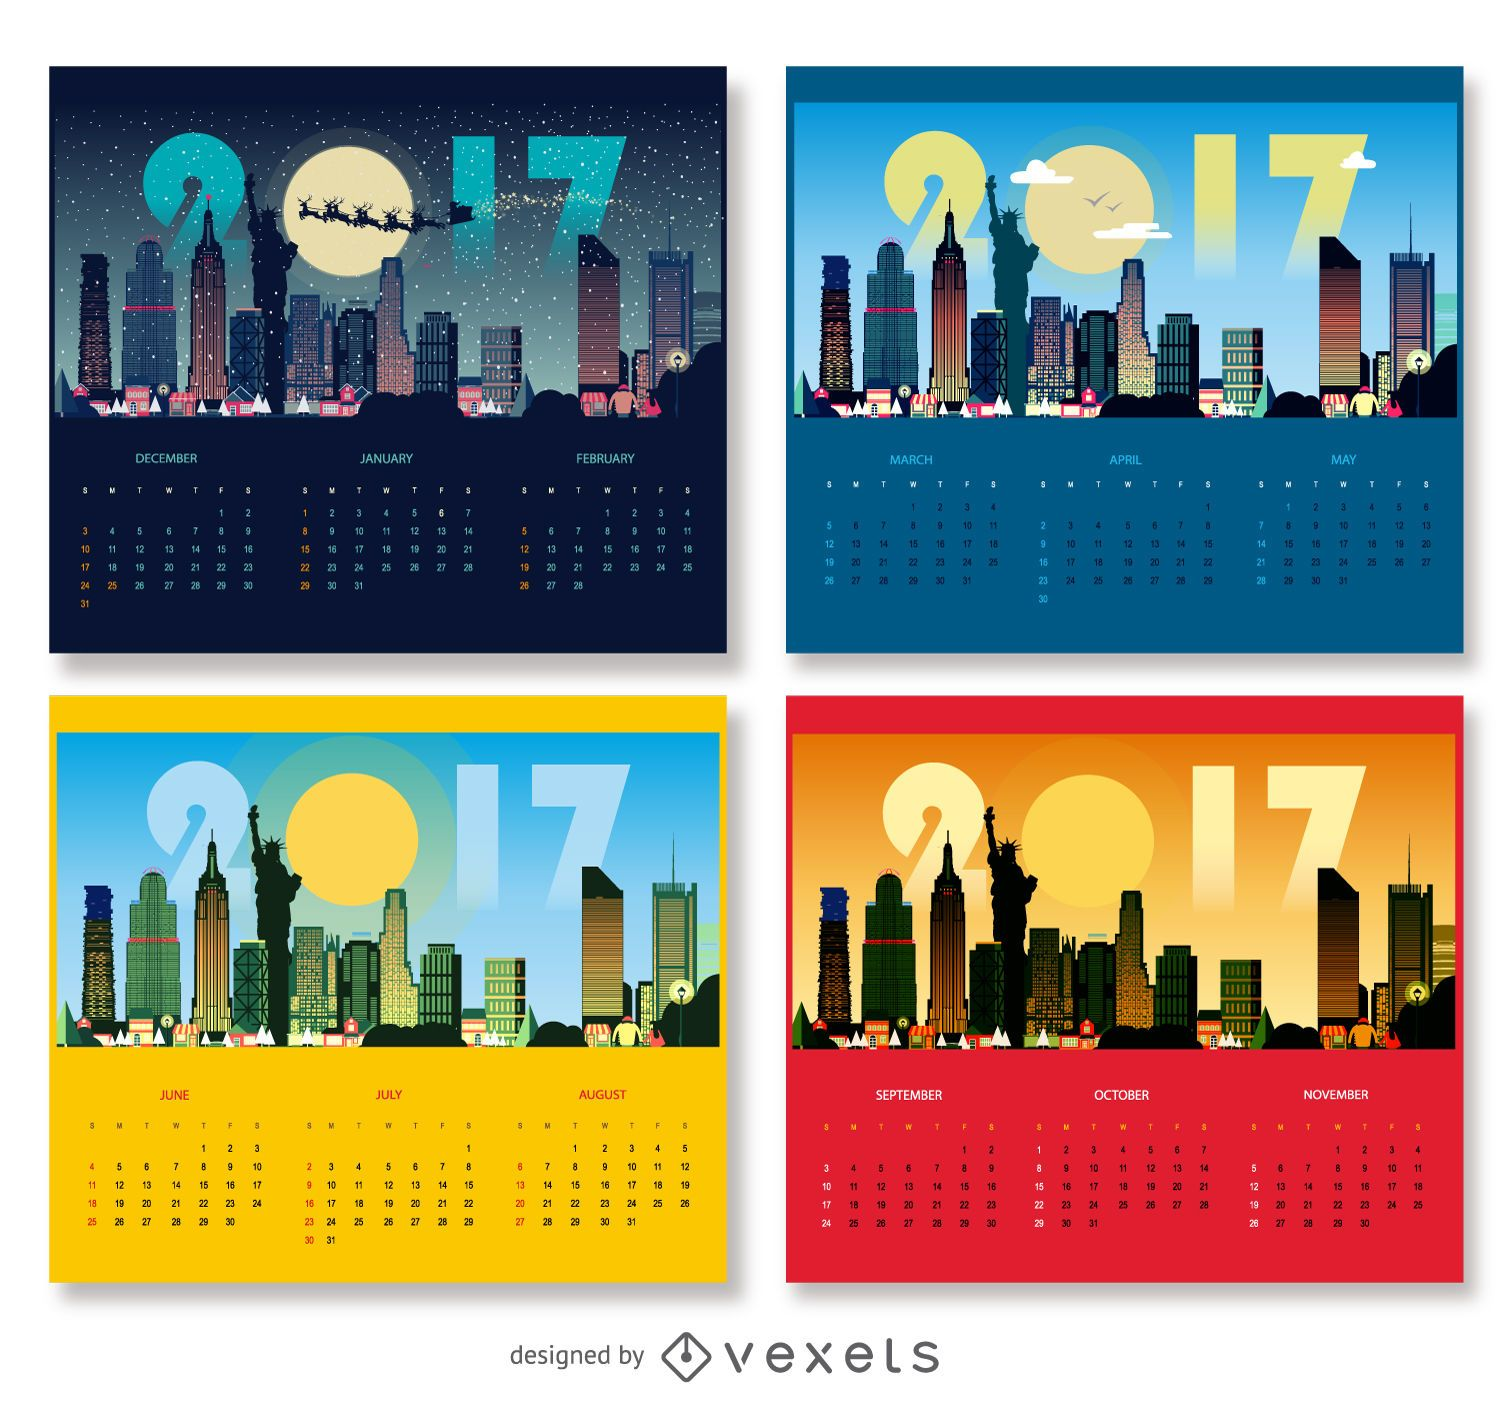 Calendar Design Photo : Calendar design vector download